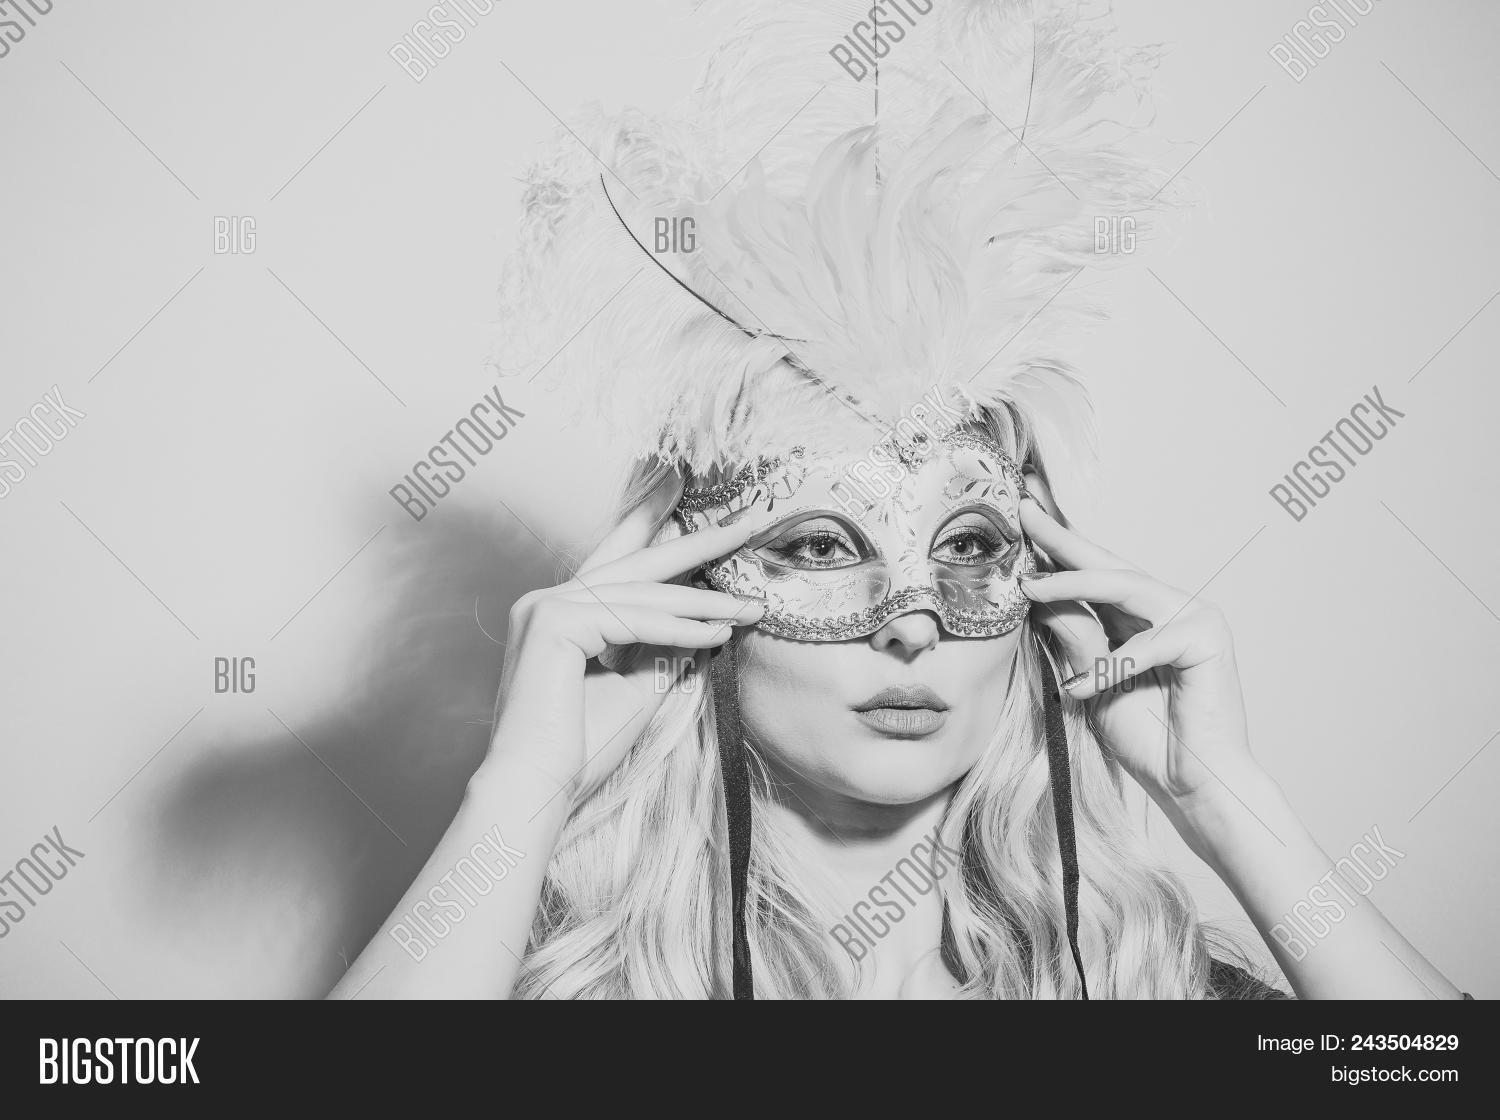 c97b85ab1ed Face girl for magazine cover. Girl face portrait in your advertisnent.  theatre and carnival party. Woman with long blond hair in carnival mask.  Beauty and ...